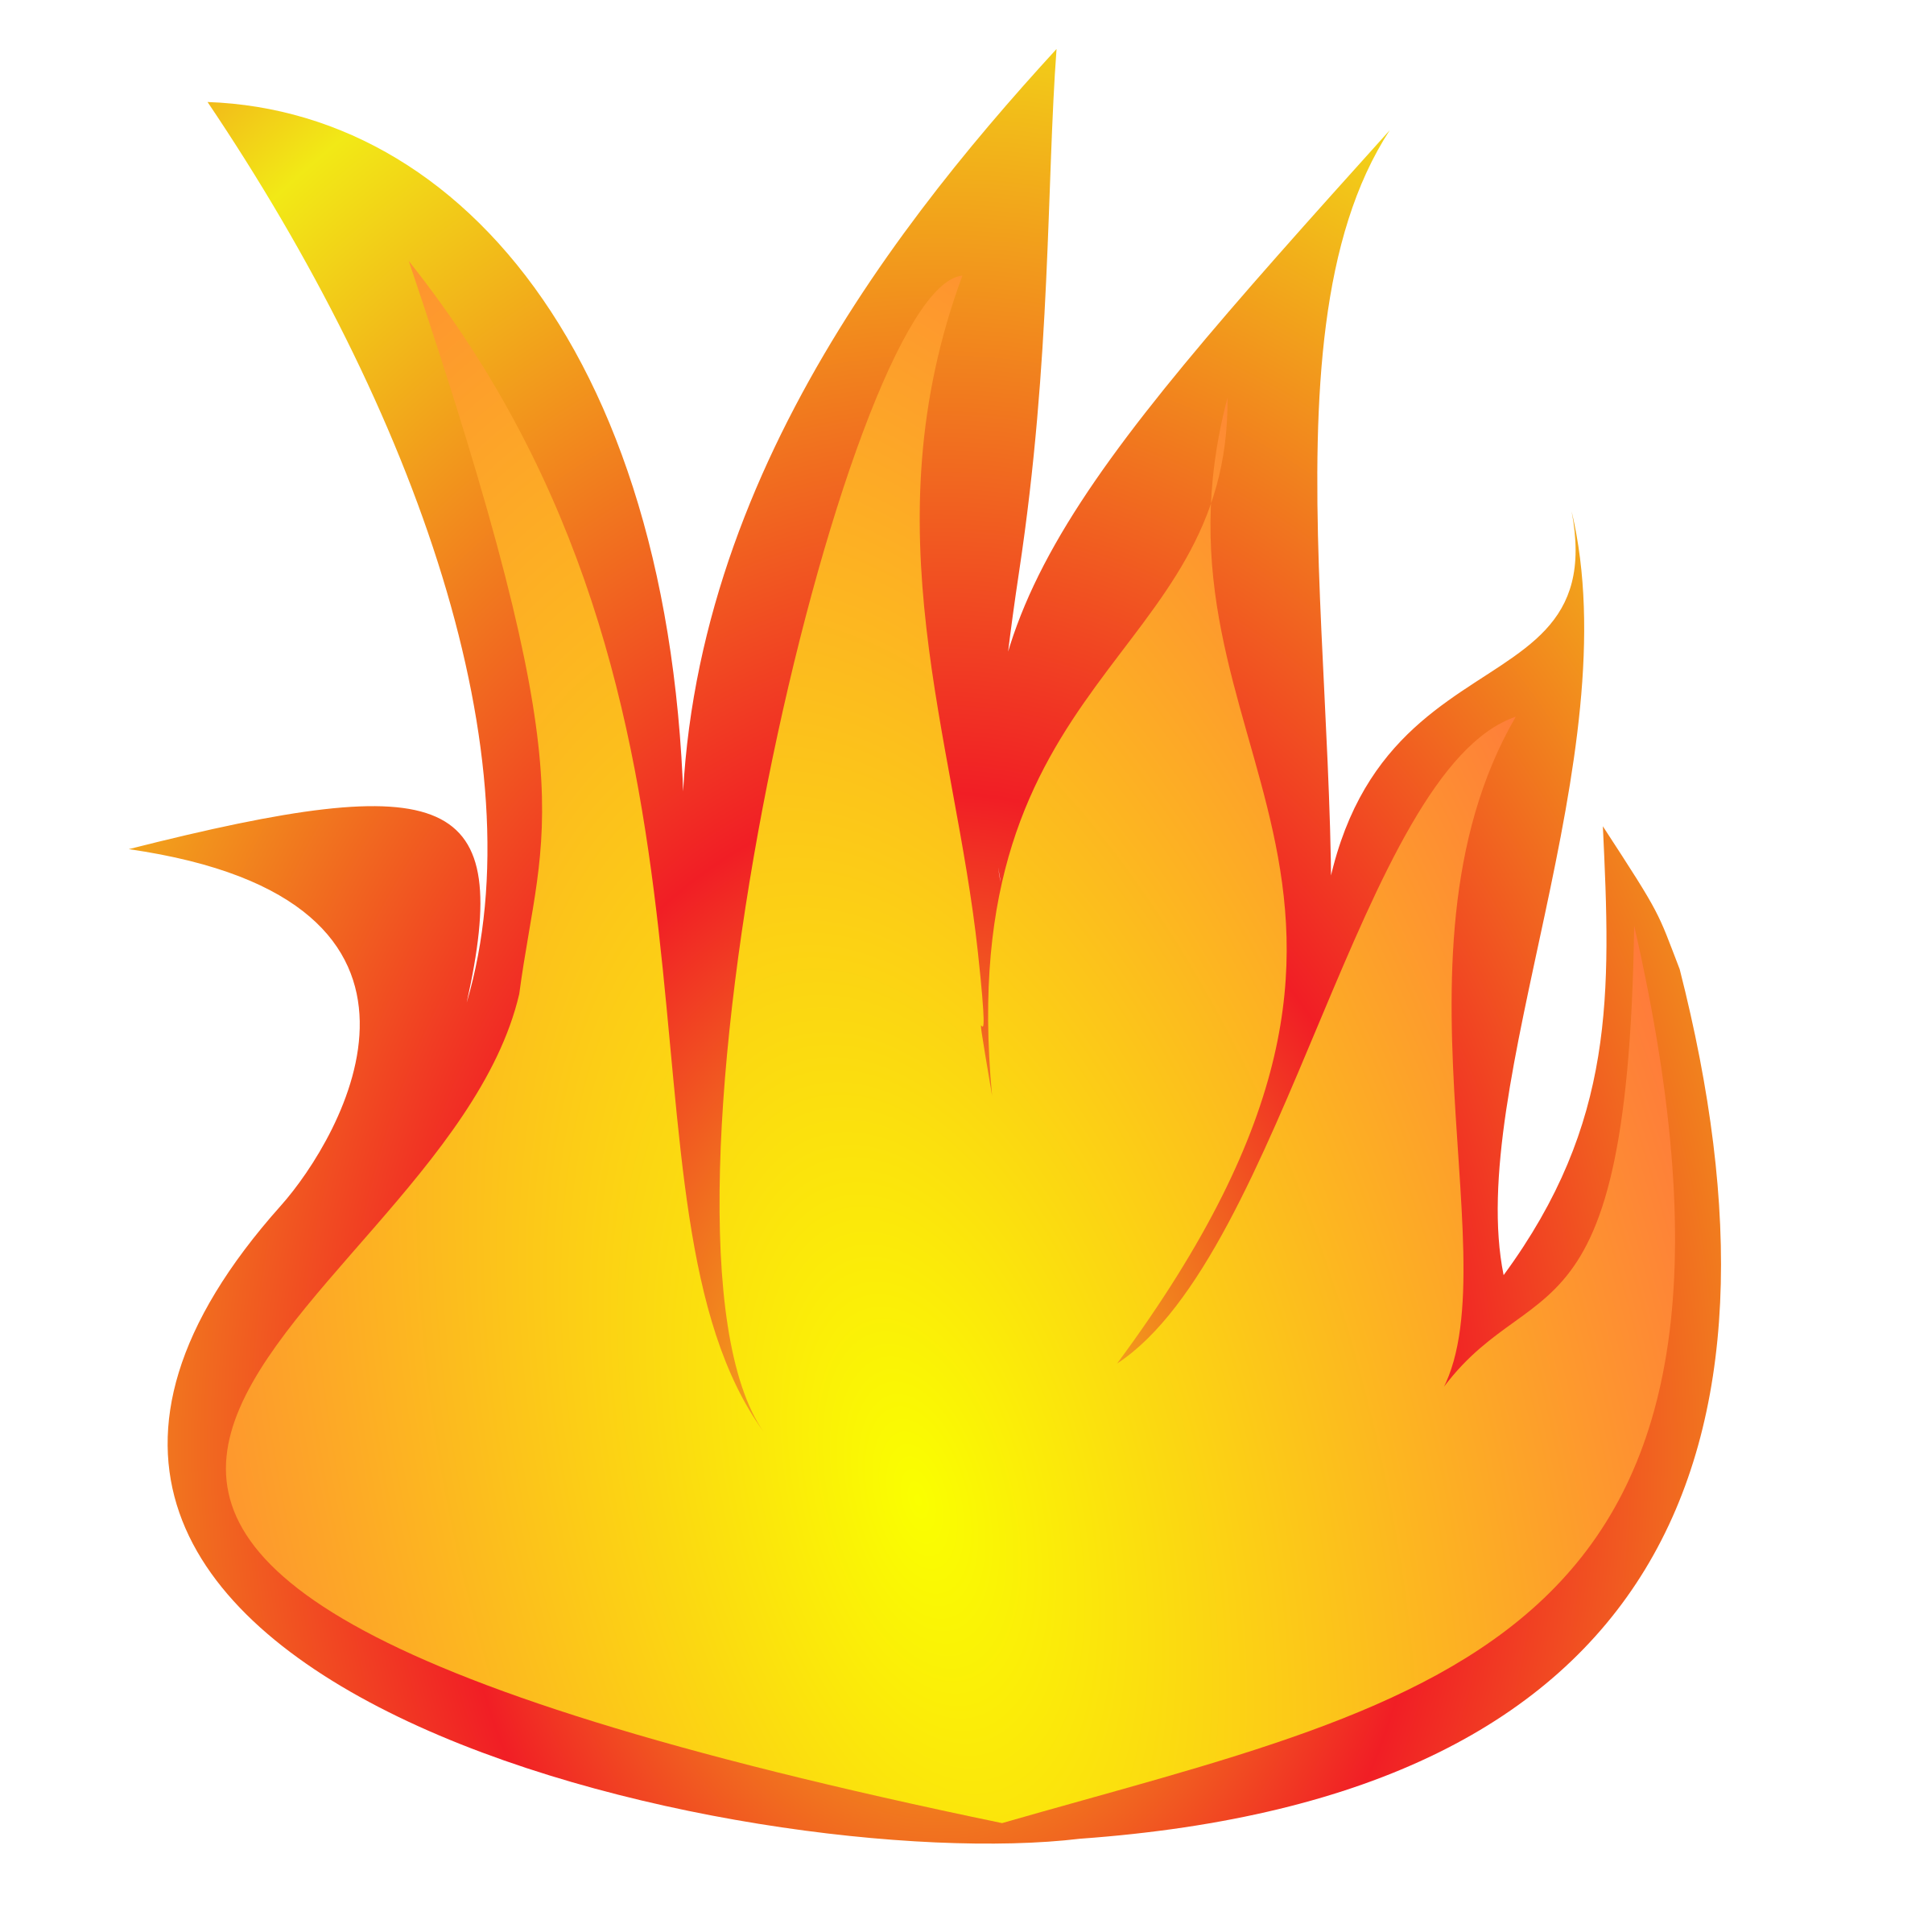 Hand clipart fire.  collection of transparent